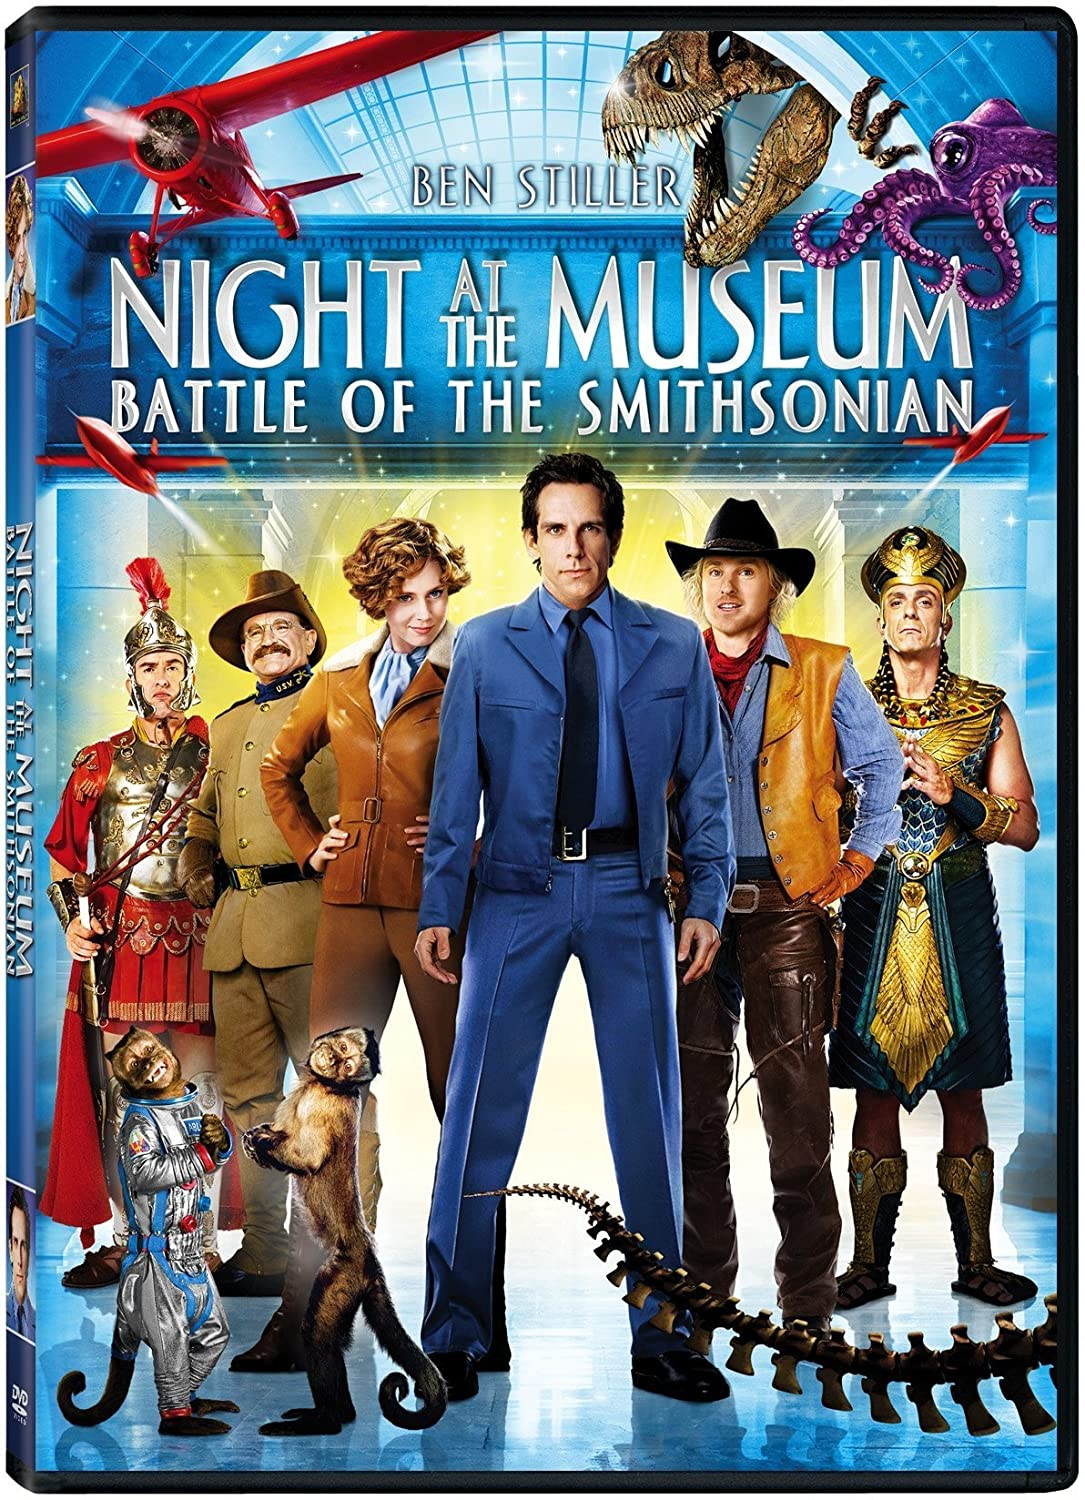 Amazon.com: Night at the Museum: Battle of the Smithsonian (Single ...